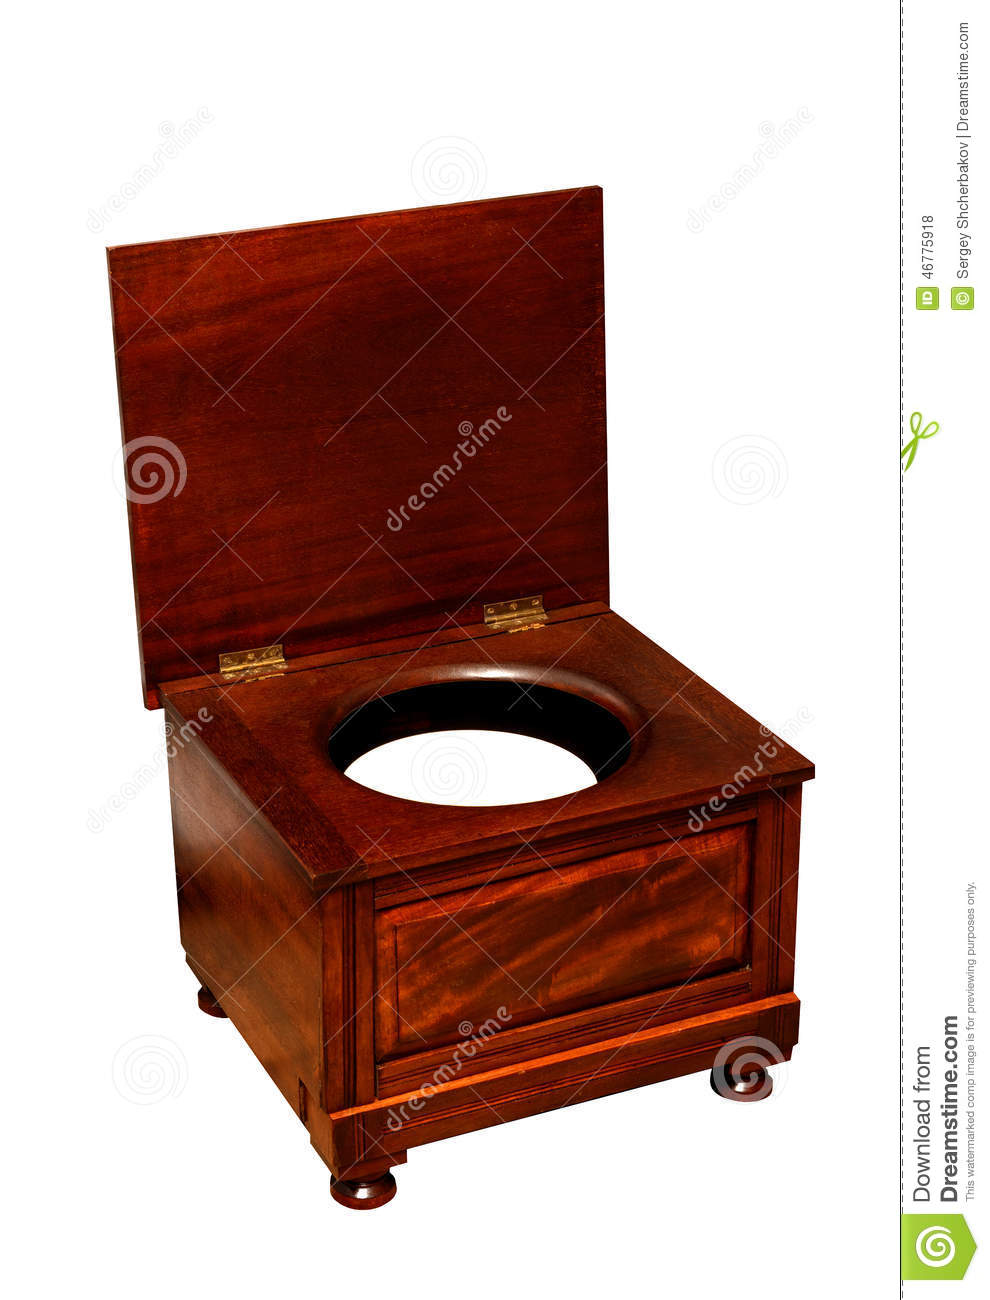 Old toilet with chamber pot an wooden chair stock photo image